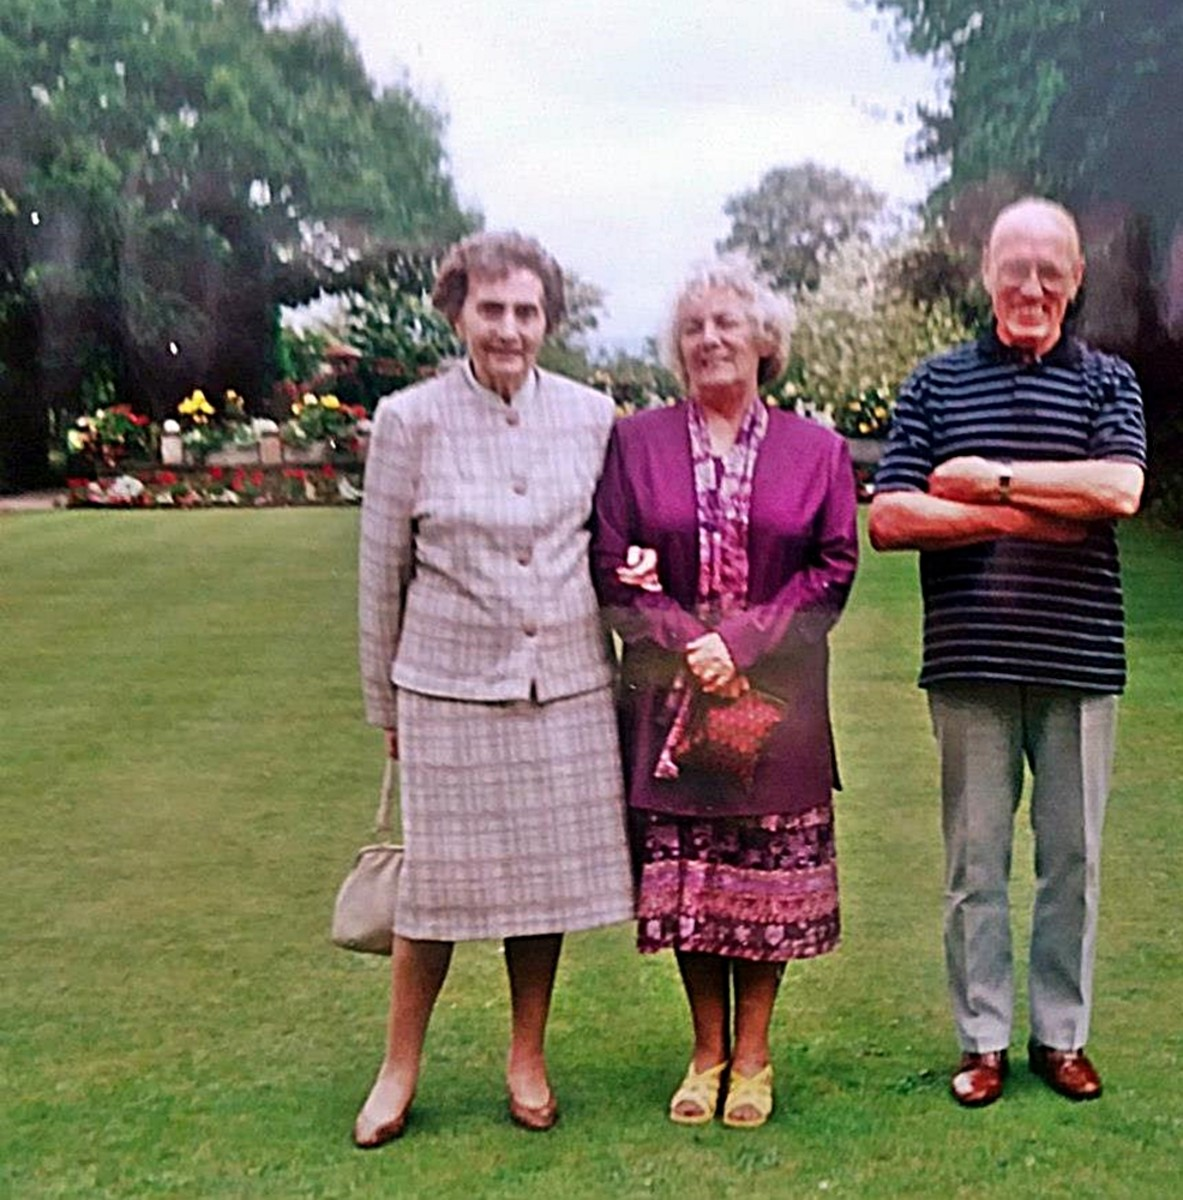 Pictured from left: Mum's pal Beryl, mum and dad in the scenic gardens of Springfield House in Pilling, where we would dine out on a Sunday in the '90s